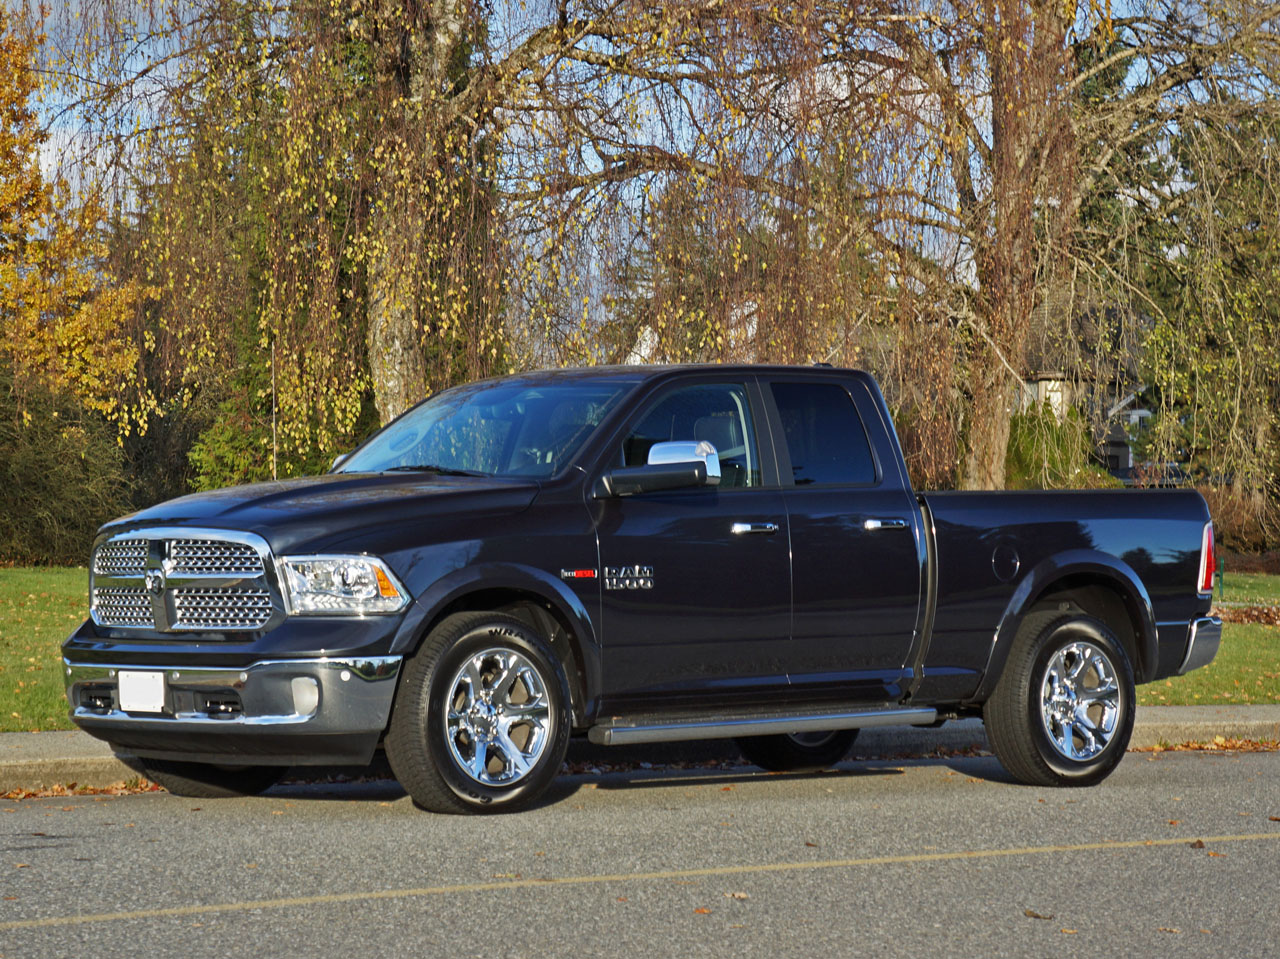 2015 Ram 1500 Ecodiesel Laramie Quad Cab 4x4 Road Test Review